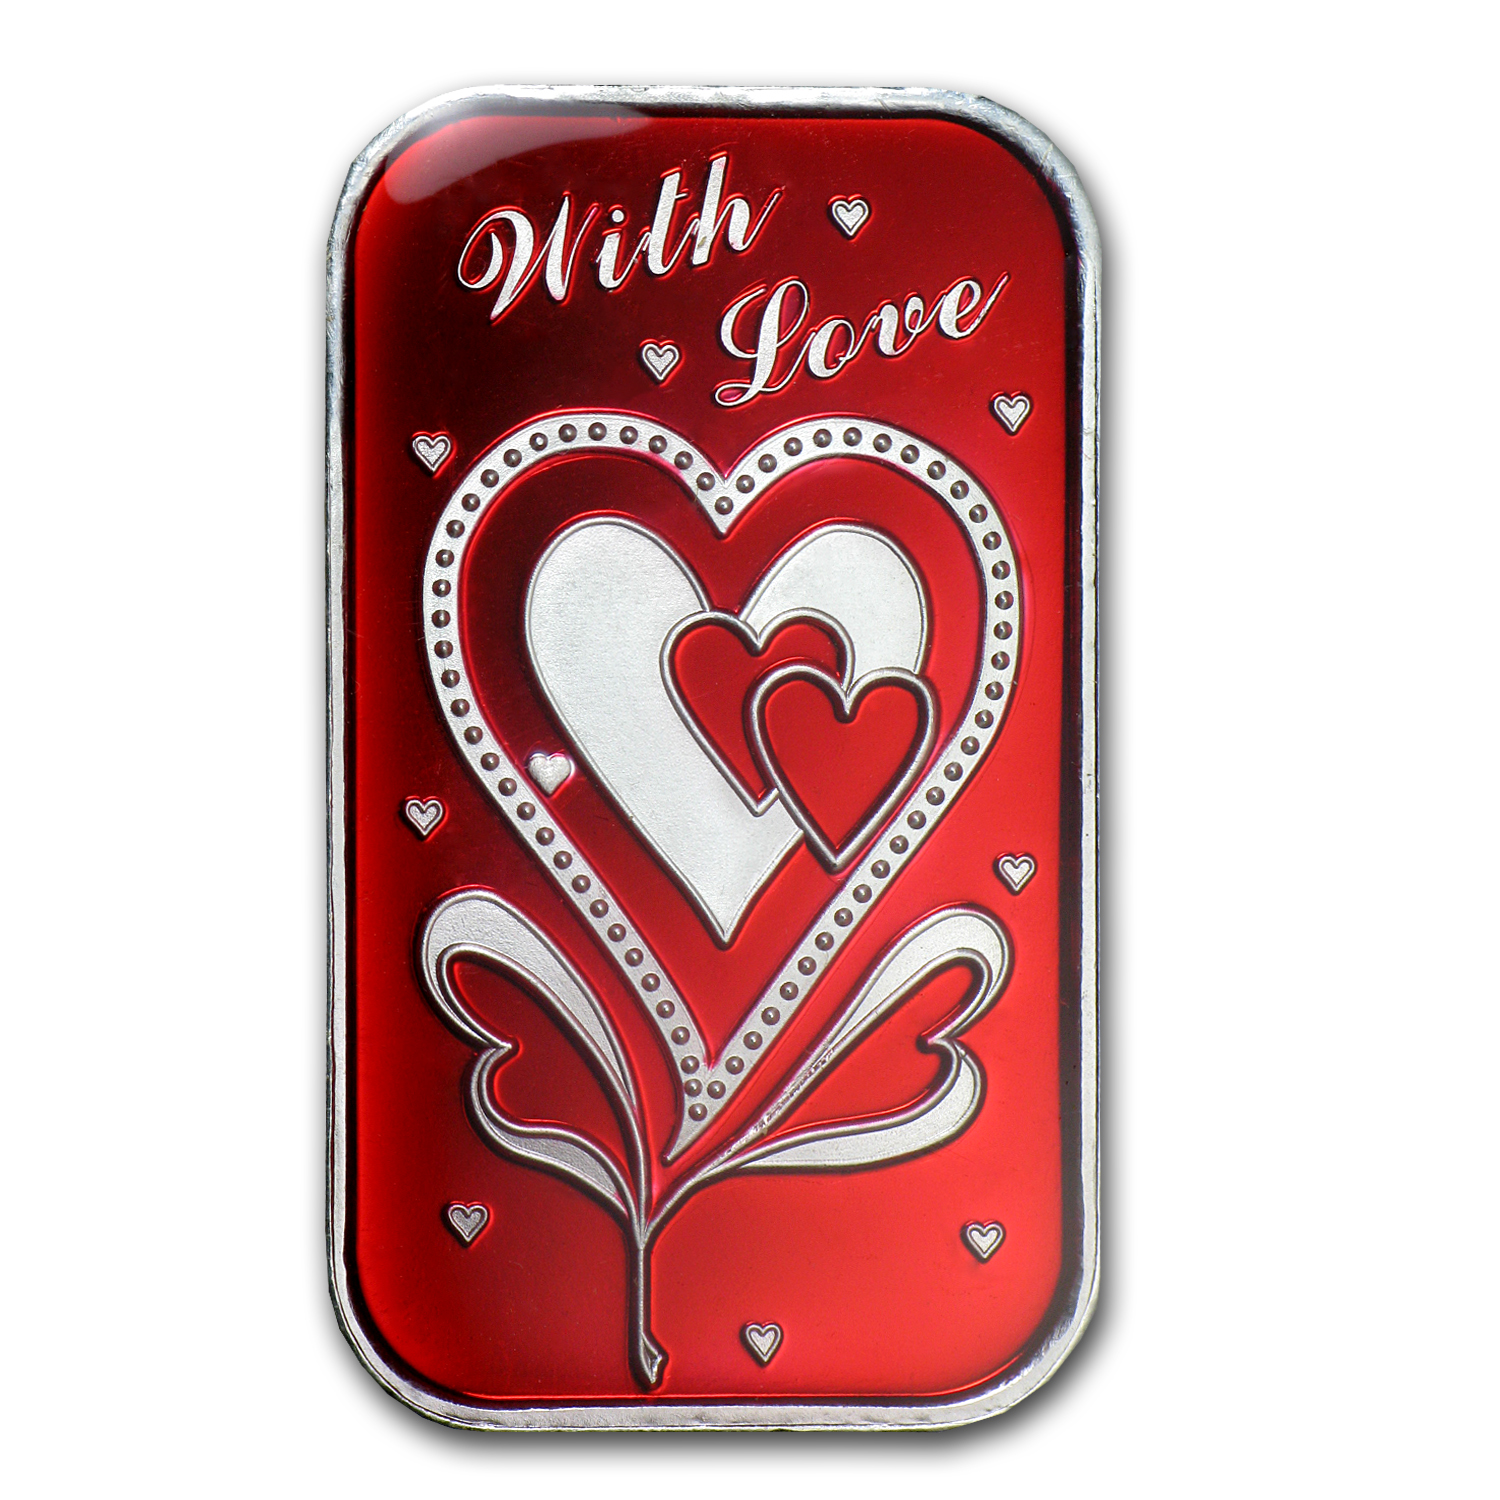 1 oz Silver Bar - With Love Enameled (w/Box & Capsule)